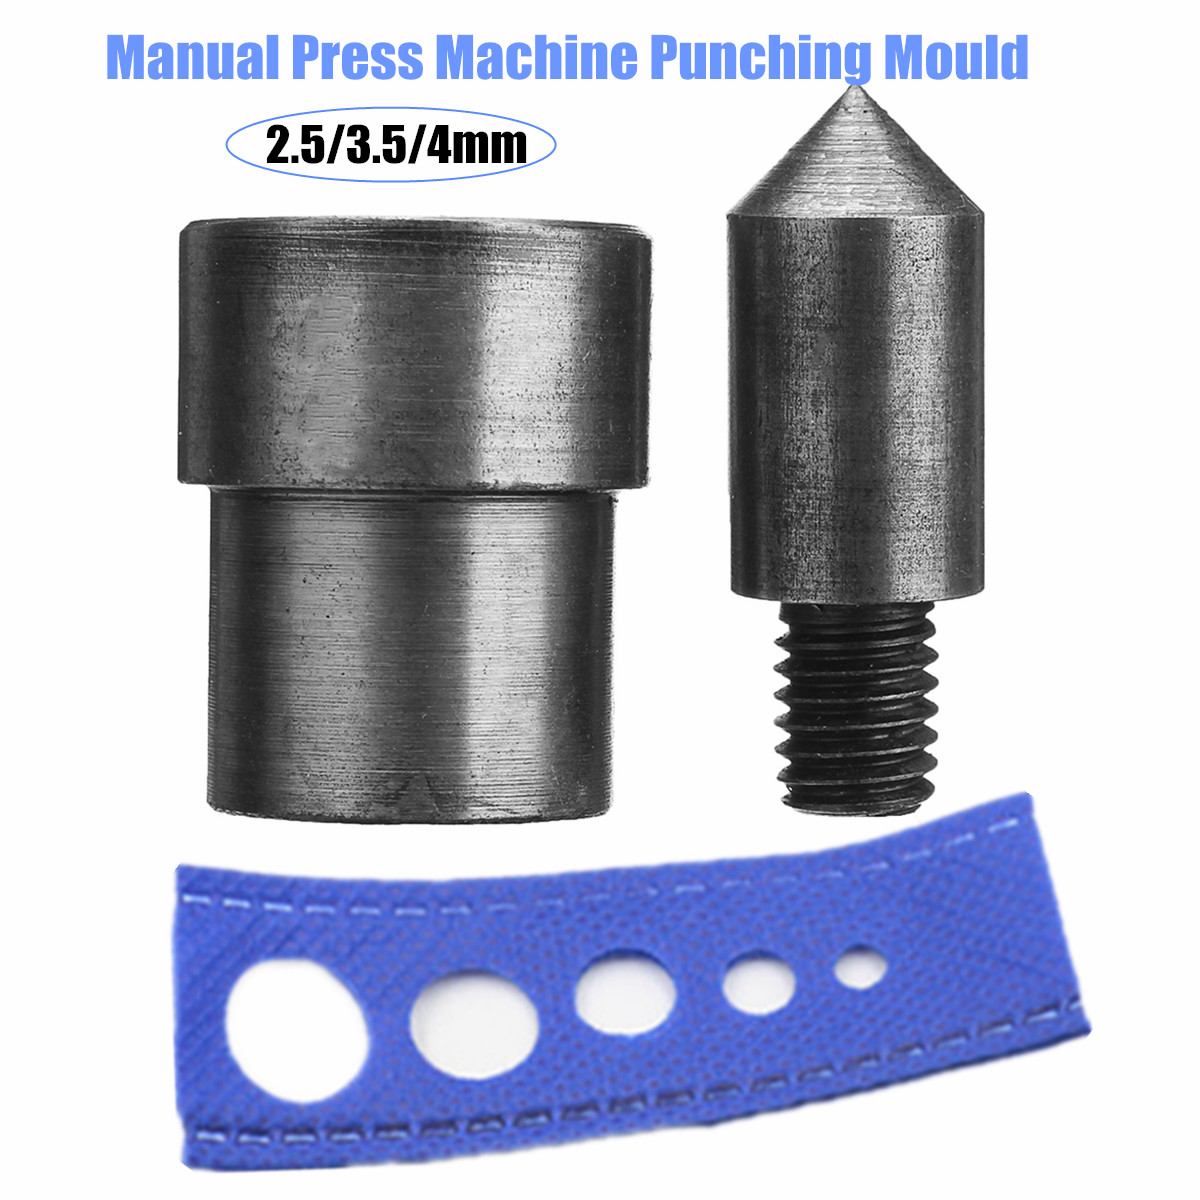 2.5/3.5/4MM Manual Press Machine Punching Mould Handmade Stud Rivet Grommet Eyelets Snap Die Punching Mould